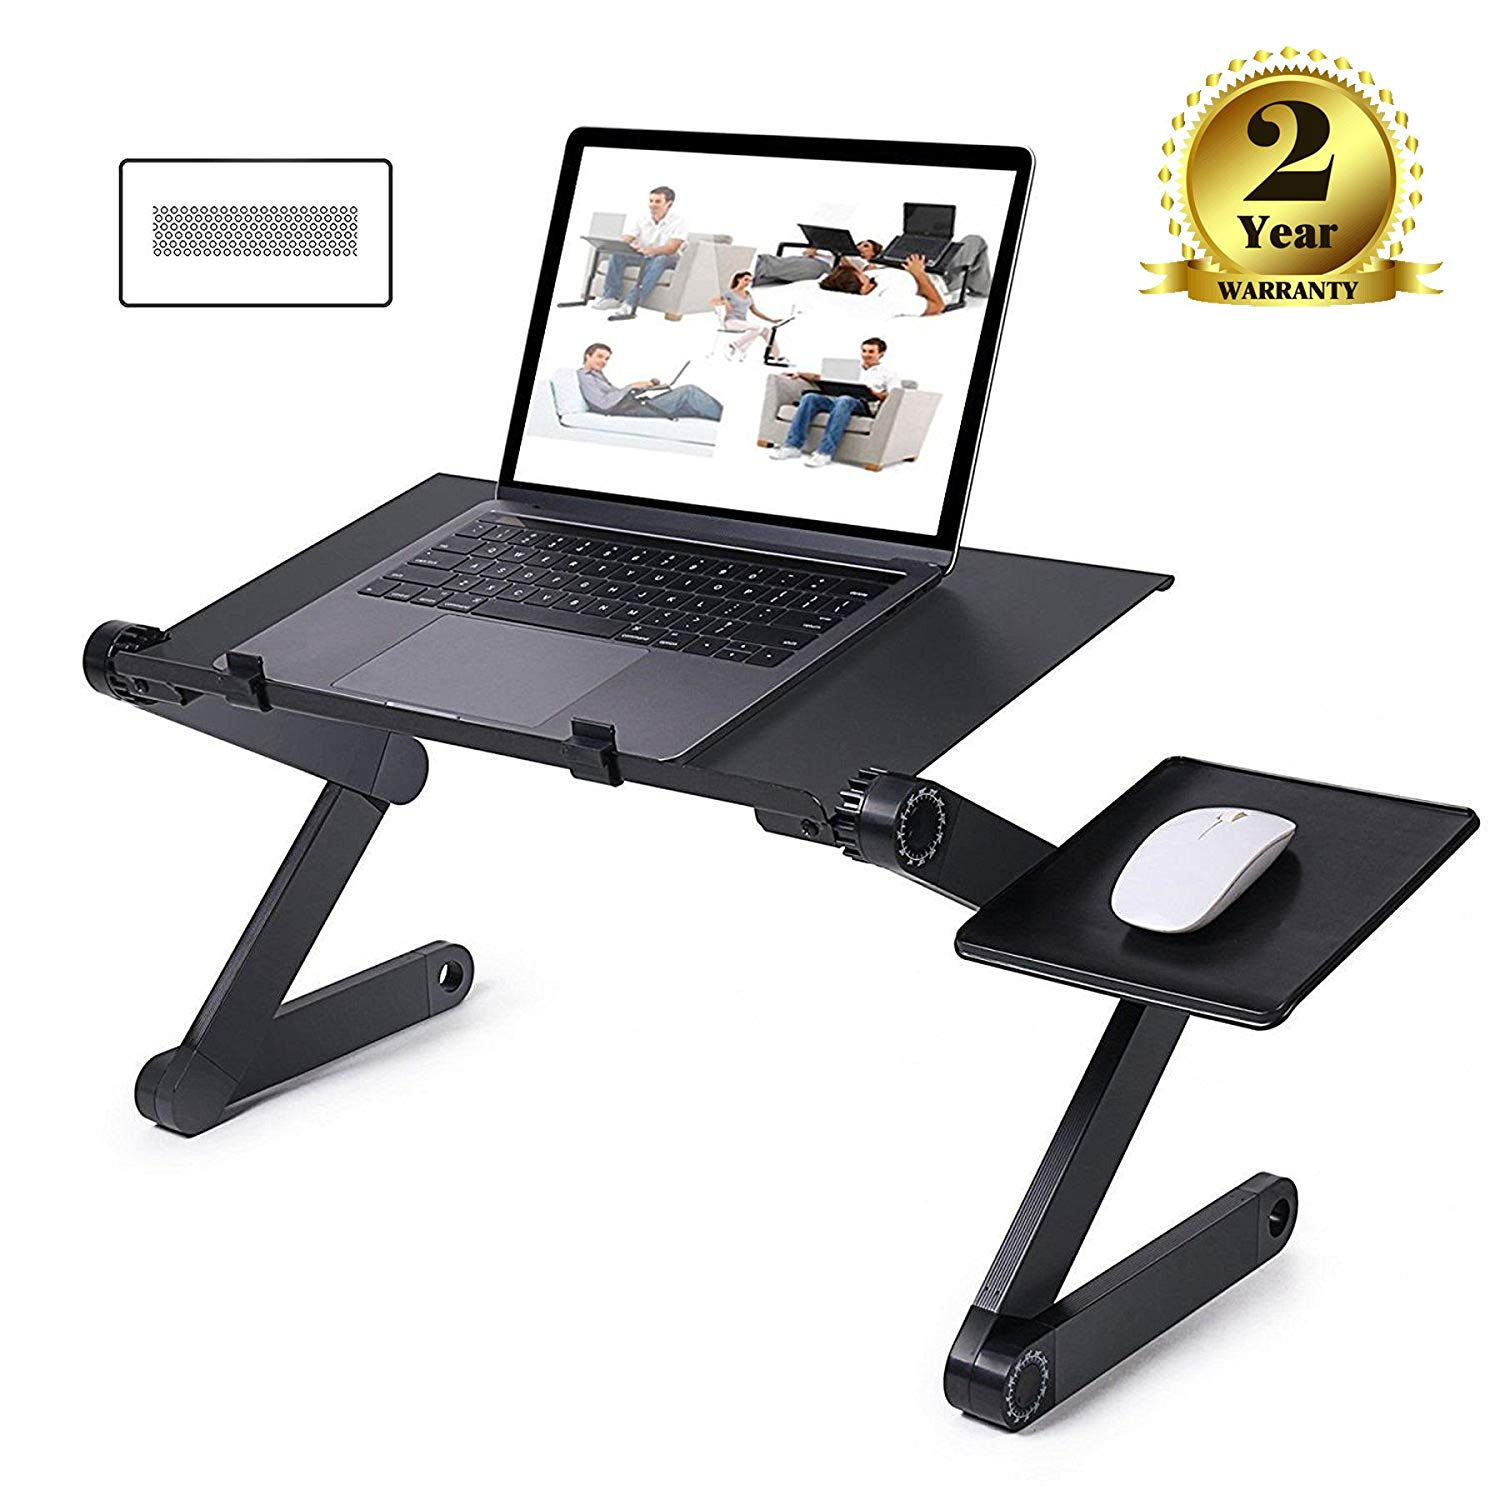 Gelinzon Laptop Table Portable Foldable Adjustable for Bed, Home Office Notebook PC Lap Desk Stand with Mouse Pad,Book Stand and Breakfast Serving Bed Tray, Ergonomics 360 Degree Adjustable Legs